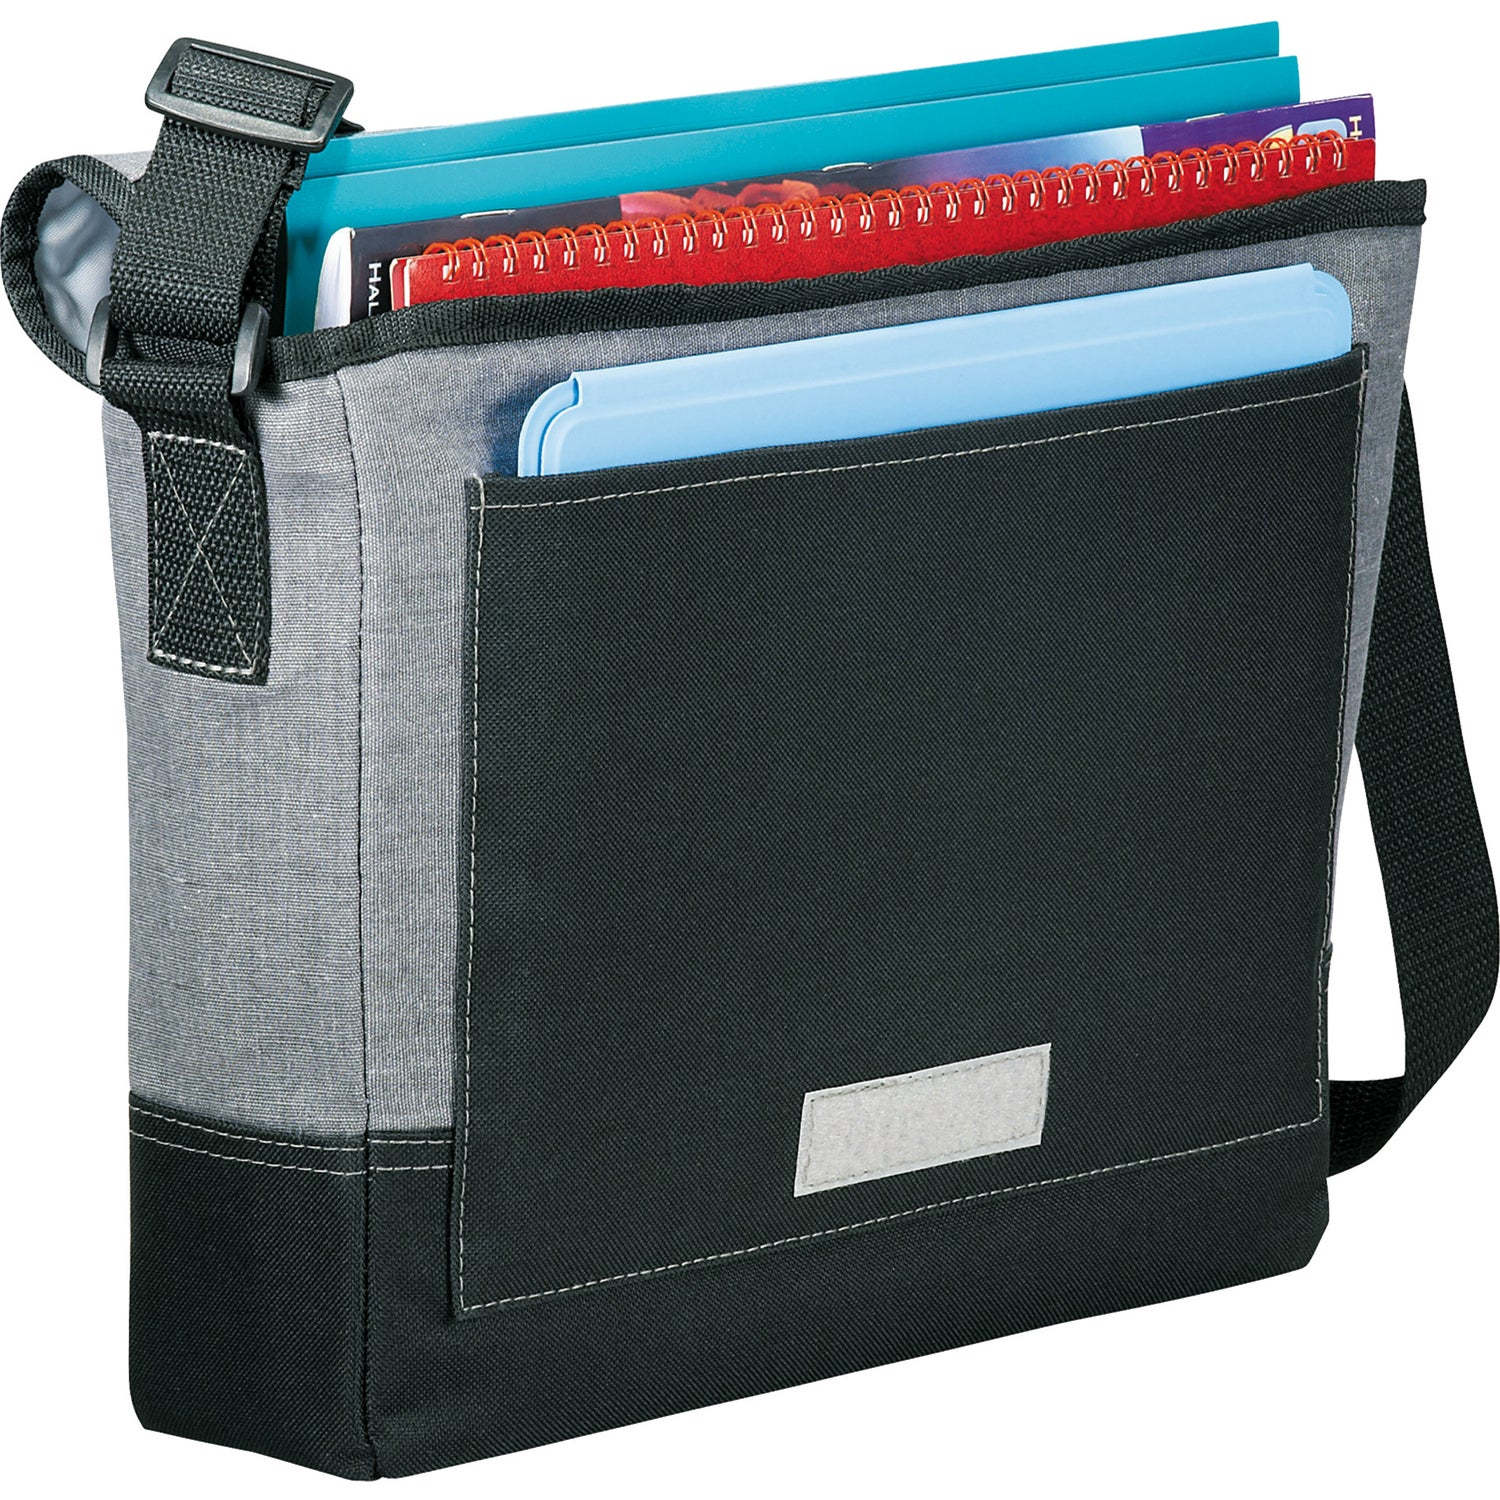 Promotional Faded Tablet Messenger Bag with Custom Logo for $7.98 Ea.